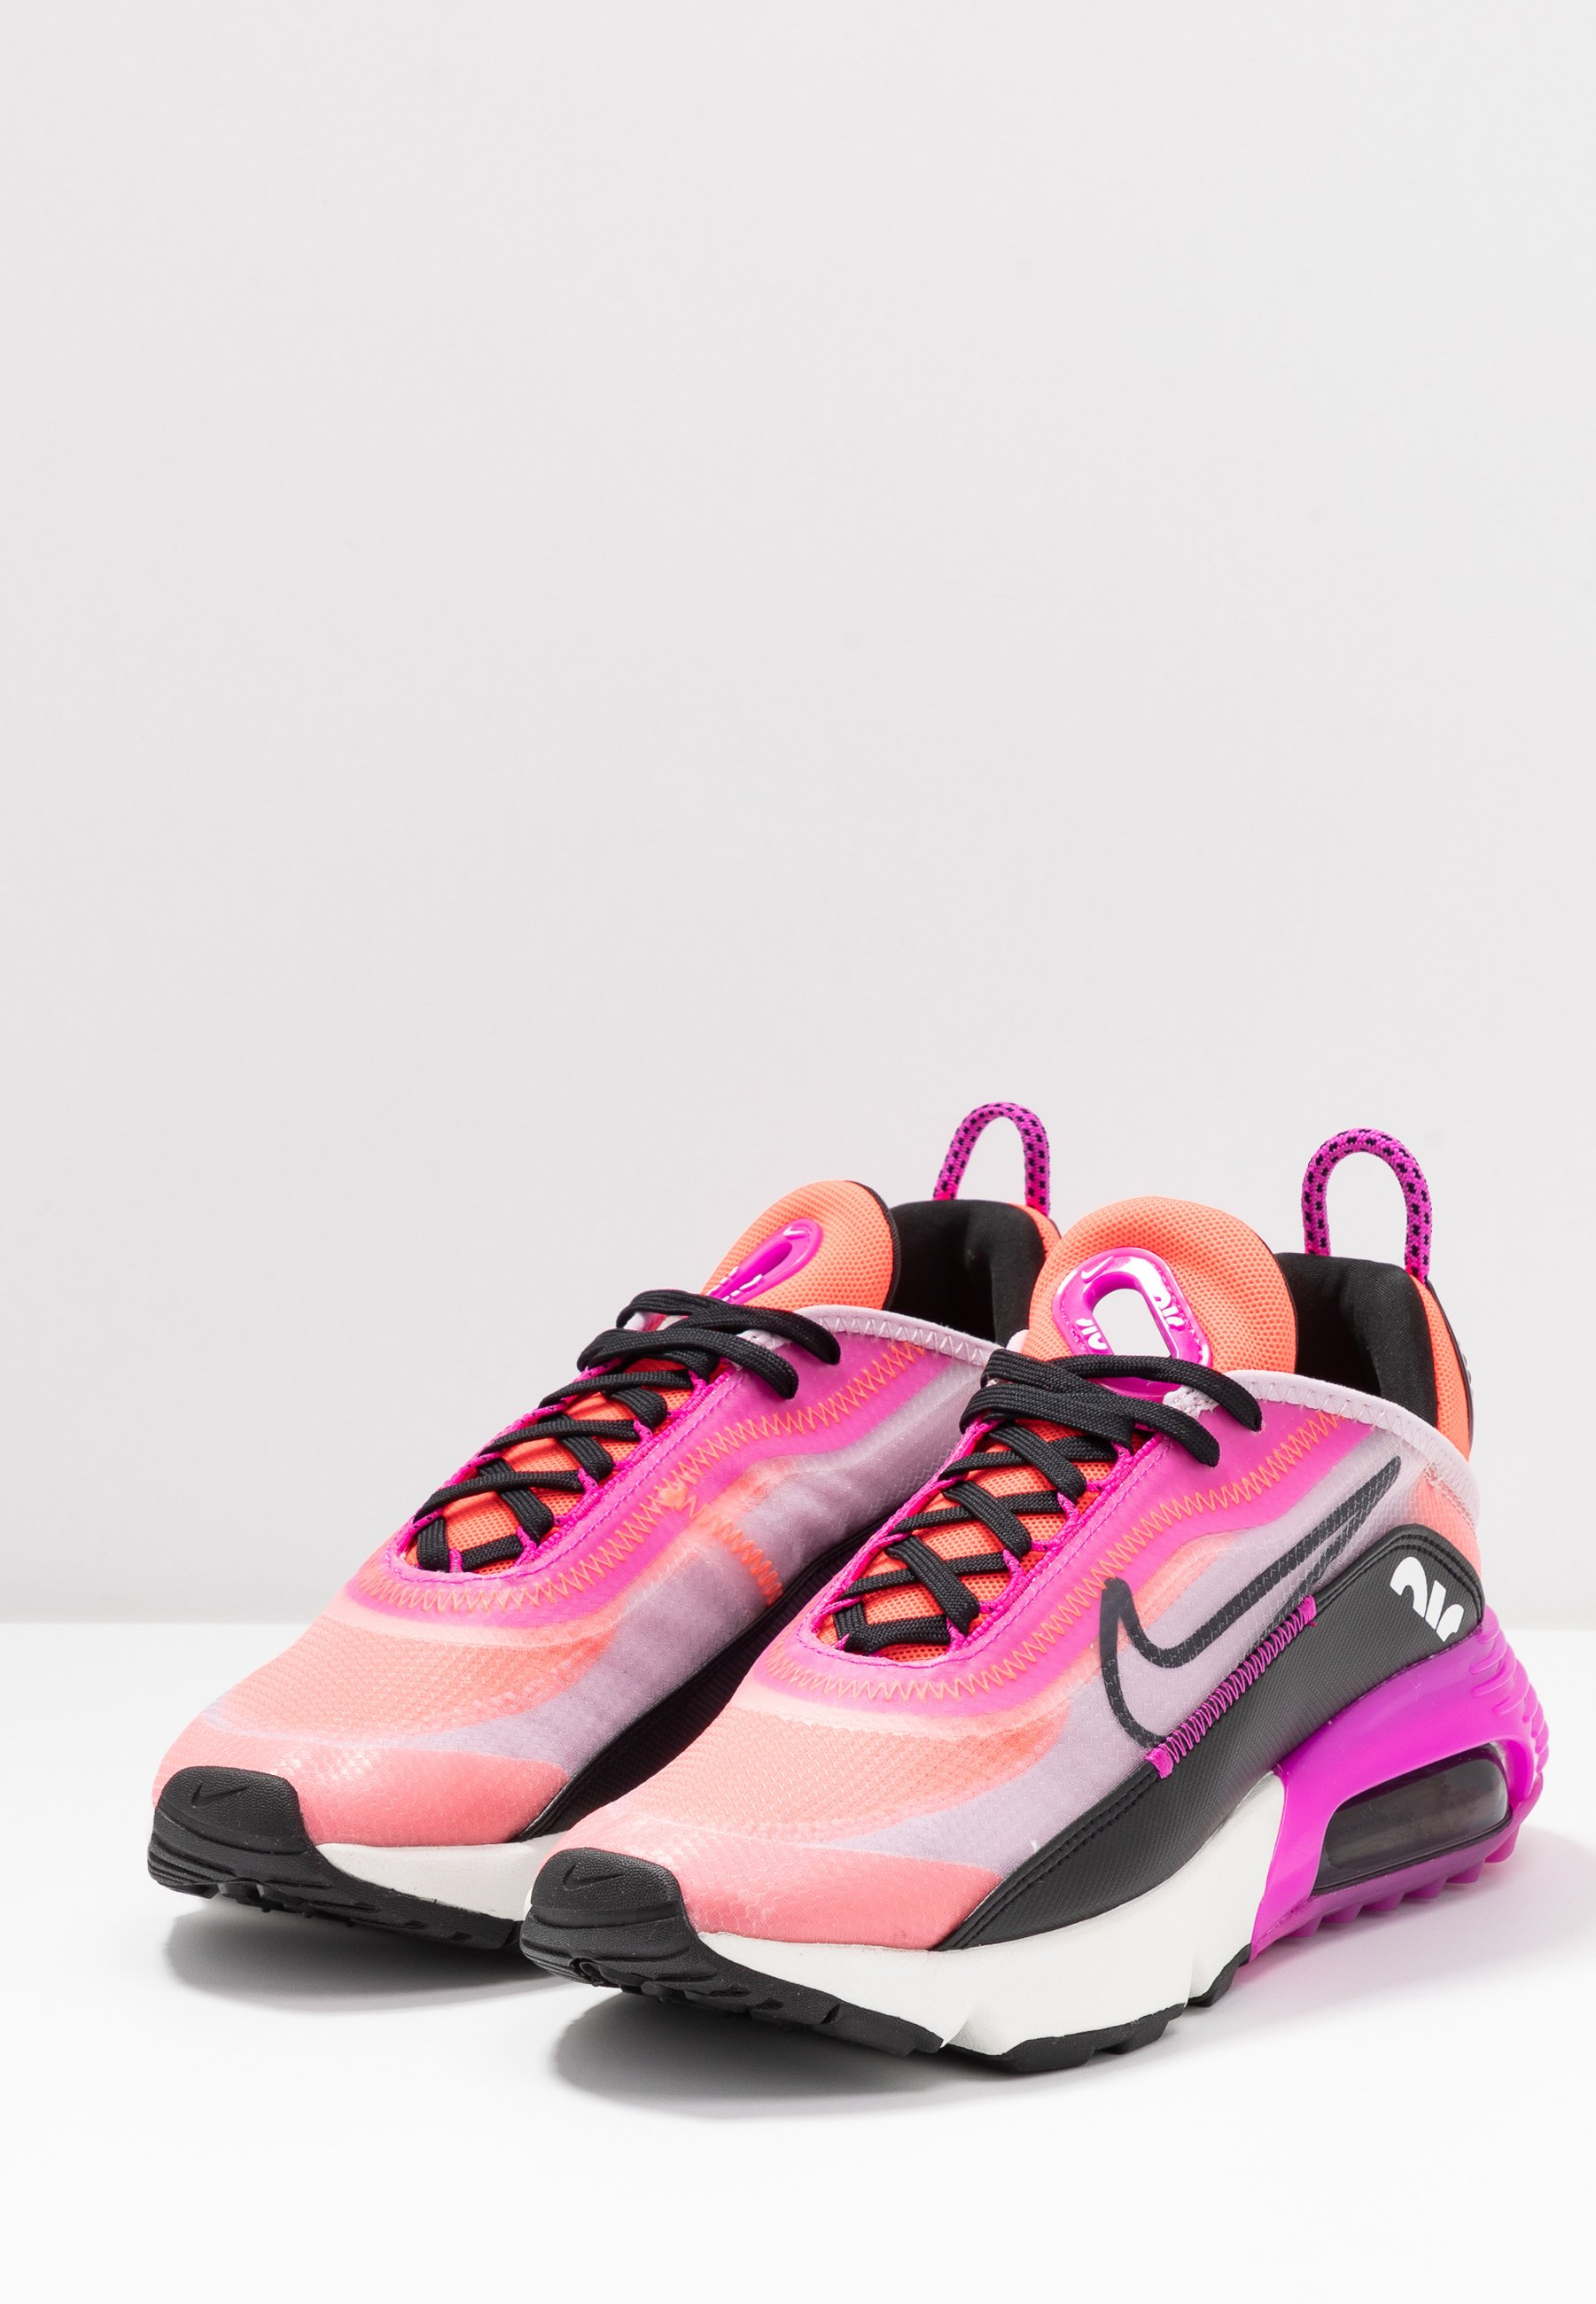 NIKE AIR MAX 2090 GS 2020 AIR MAX brand new series of shoes! Large.